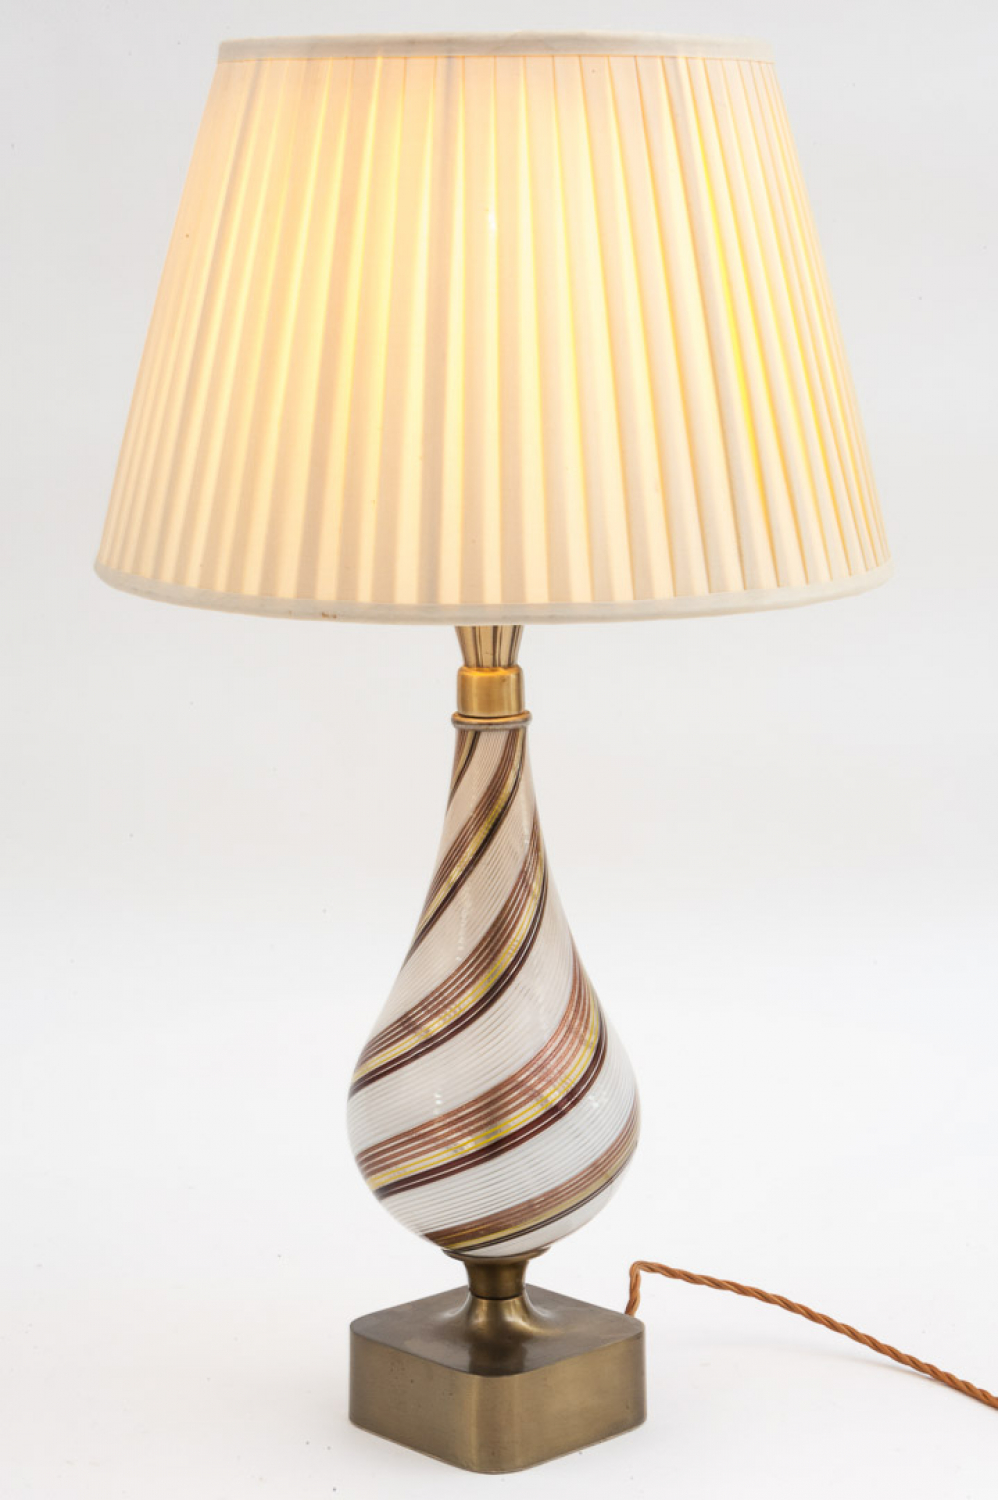 Italian Murano table lamp